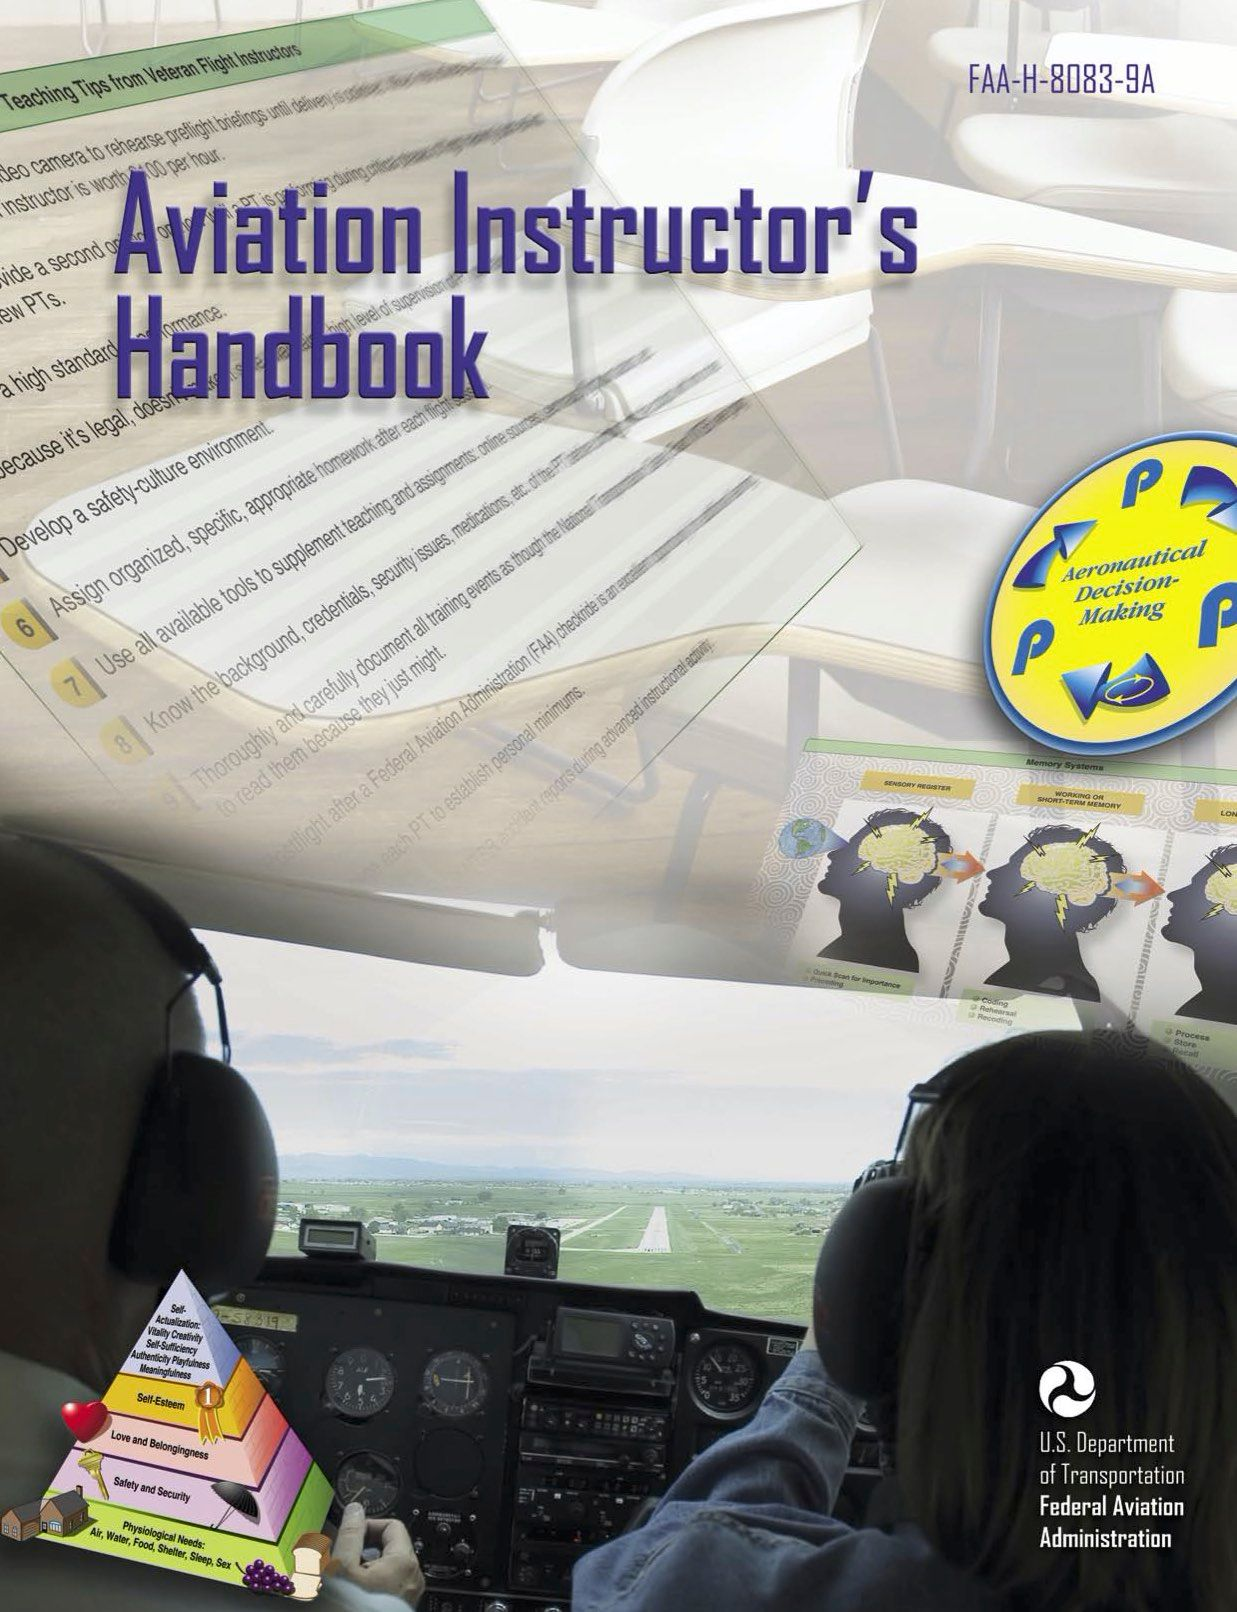 FAA's Aviation Instructor Handbook (FAA-H-8083-9A) Cover